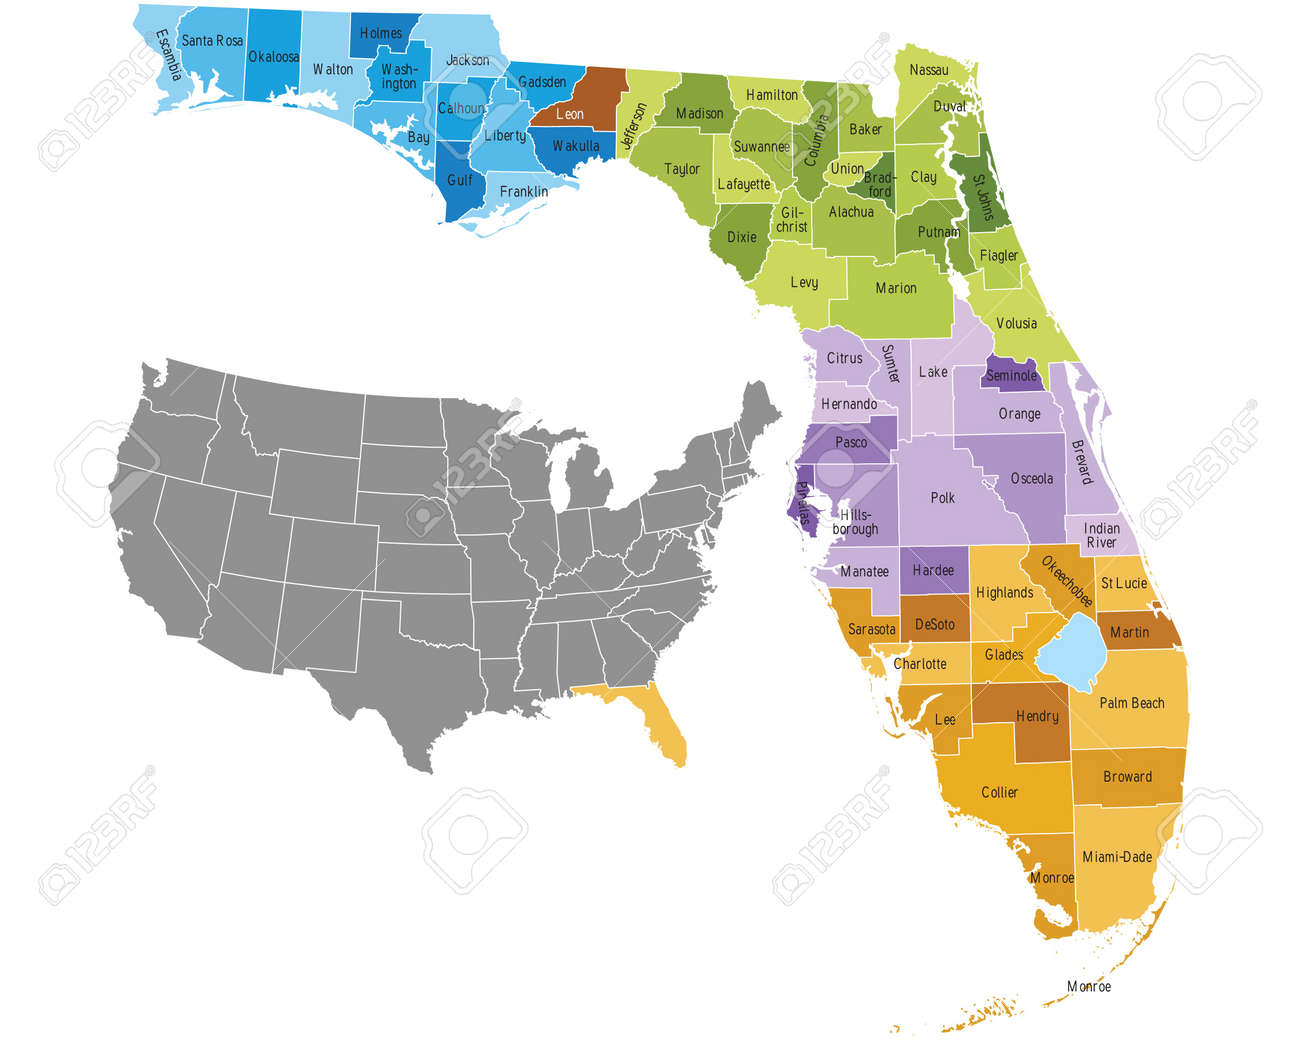 Map De Florida.Florida State Counties Map With Boundaries And Names Royalty Free